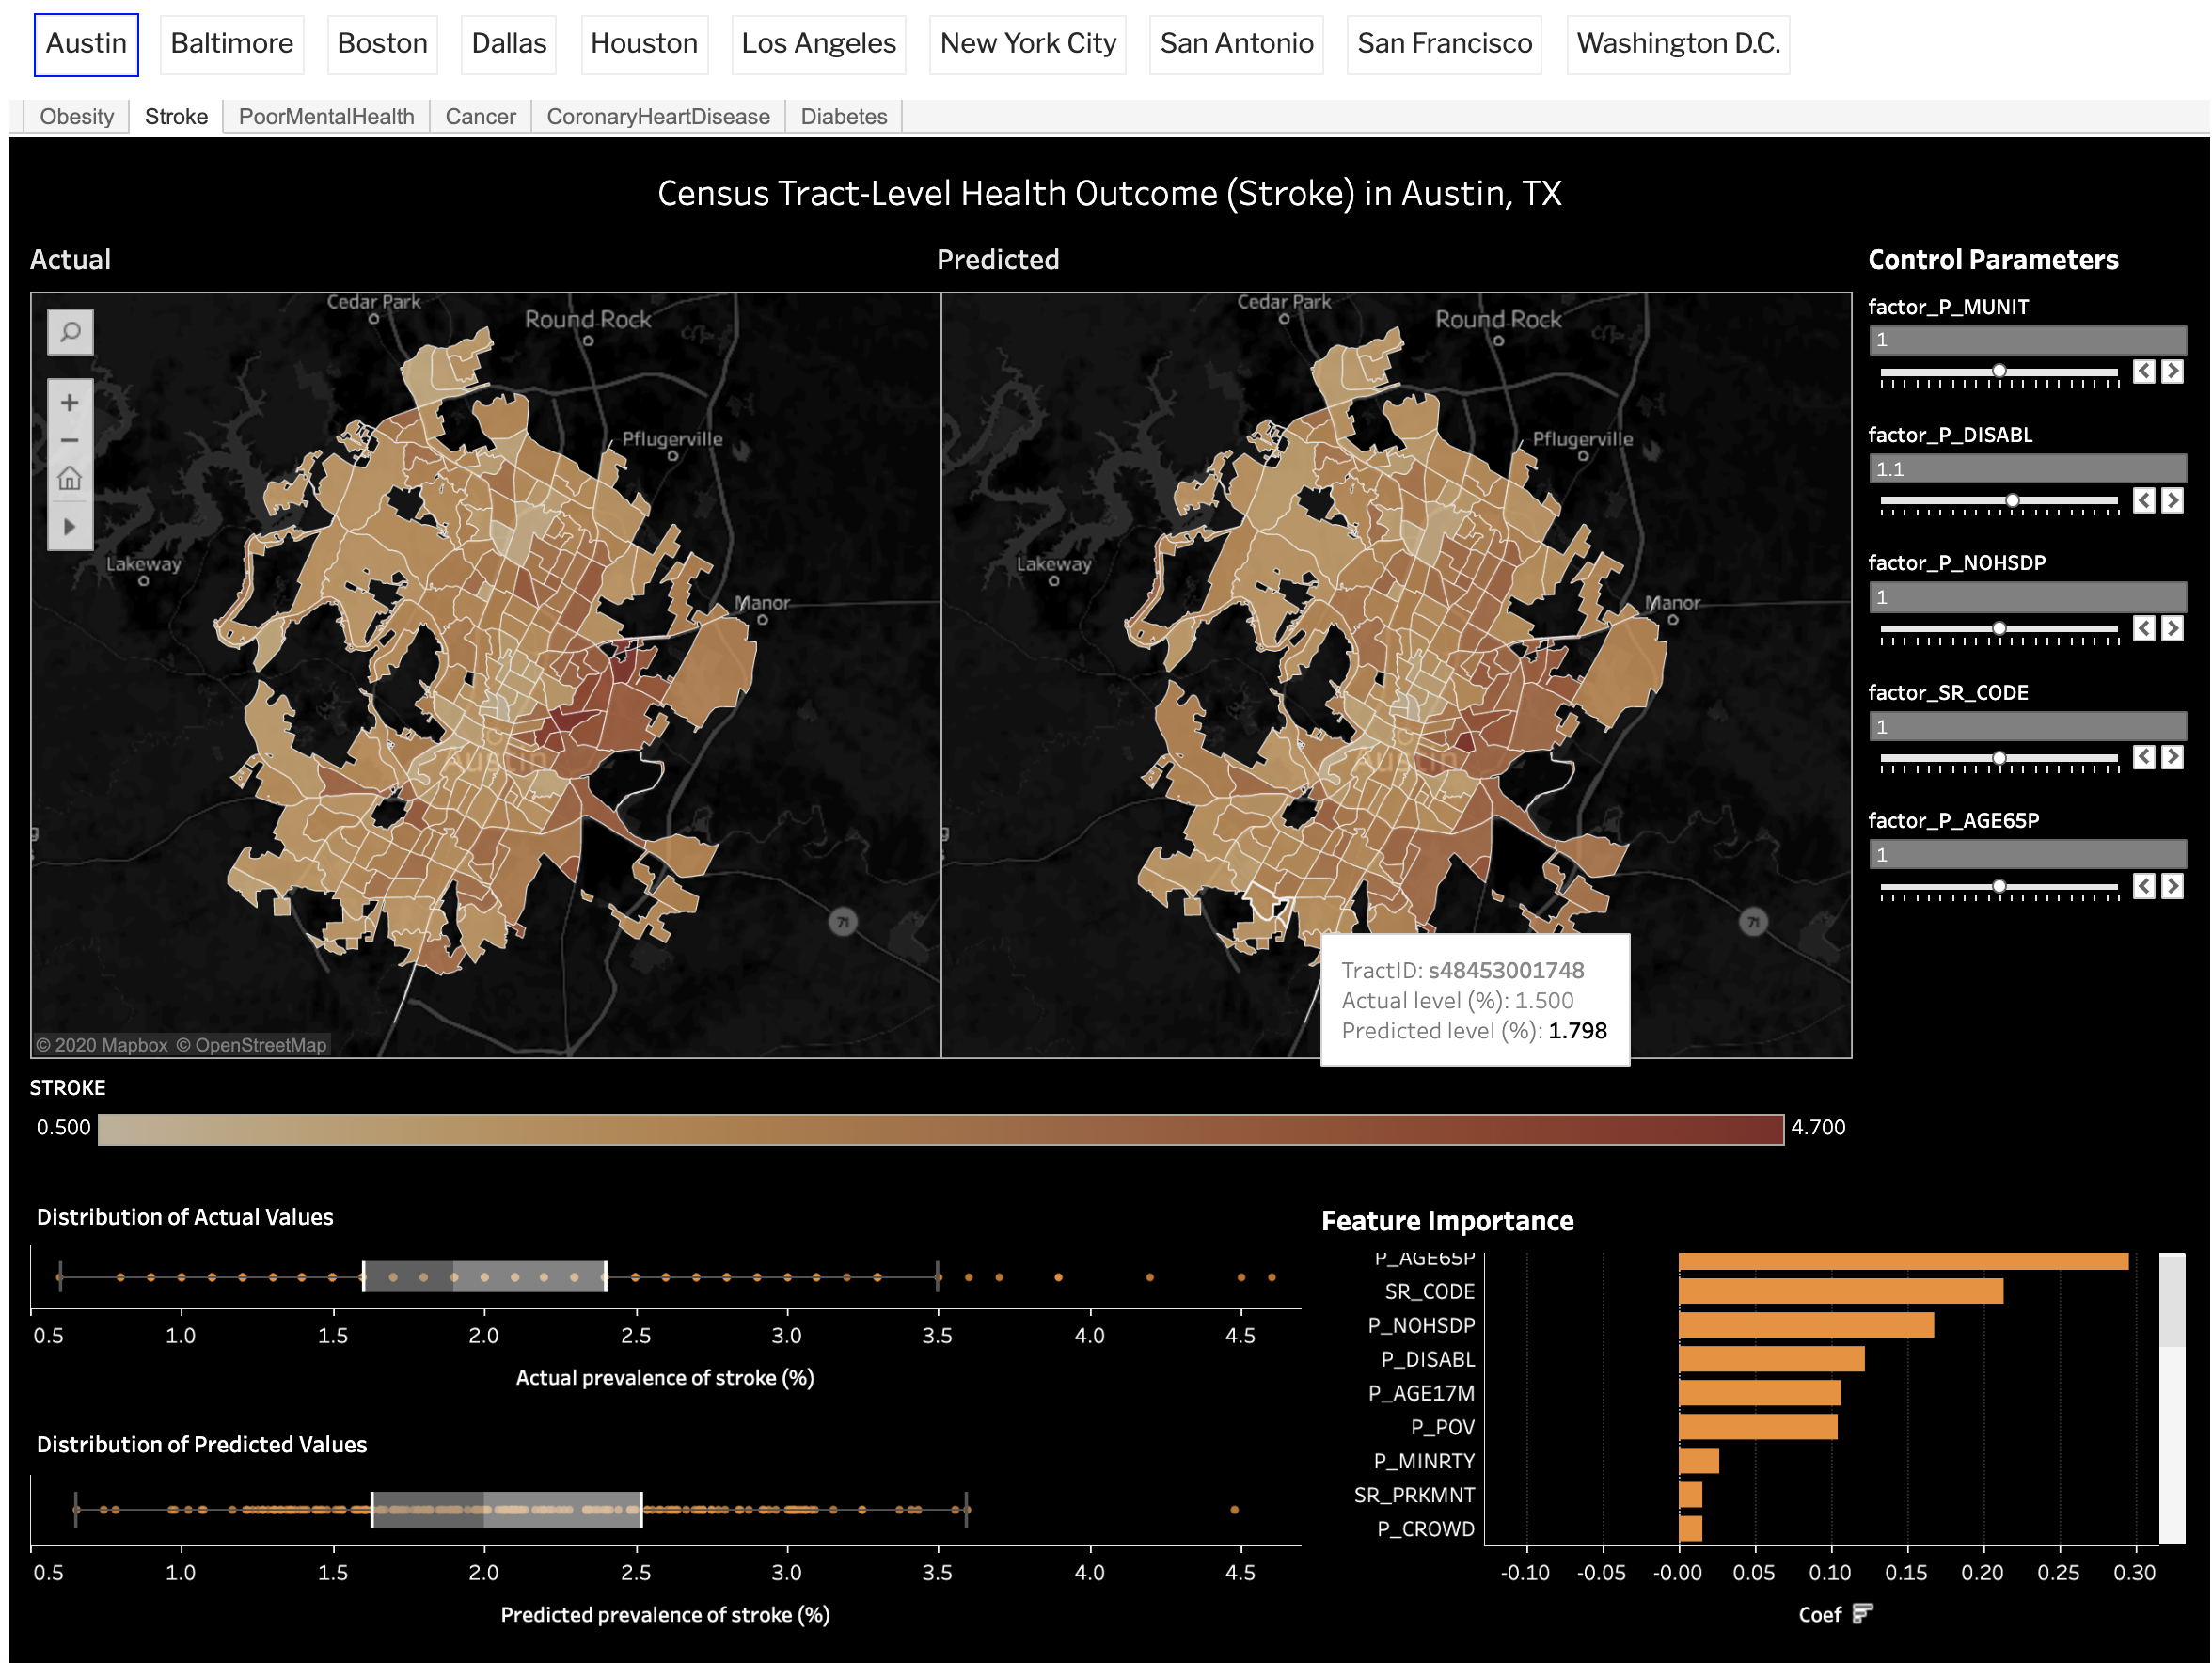 Dashboard shows risk for heart disease by census tract in Austin.